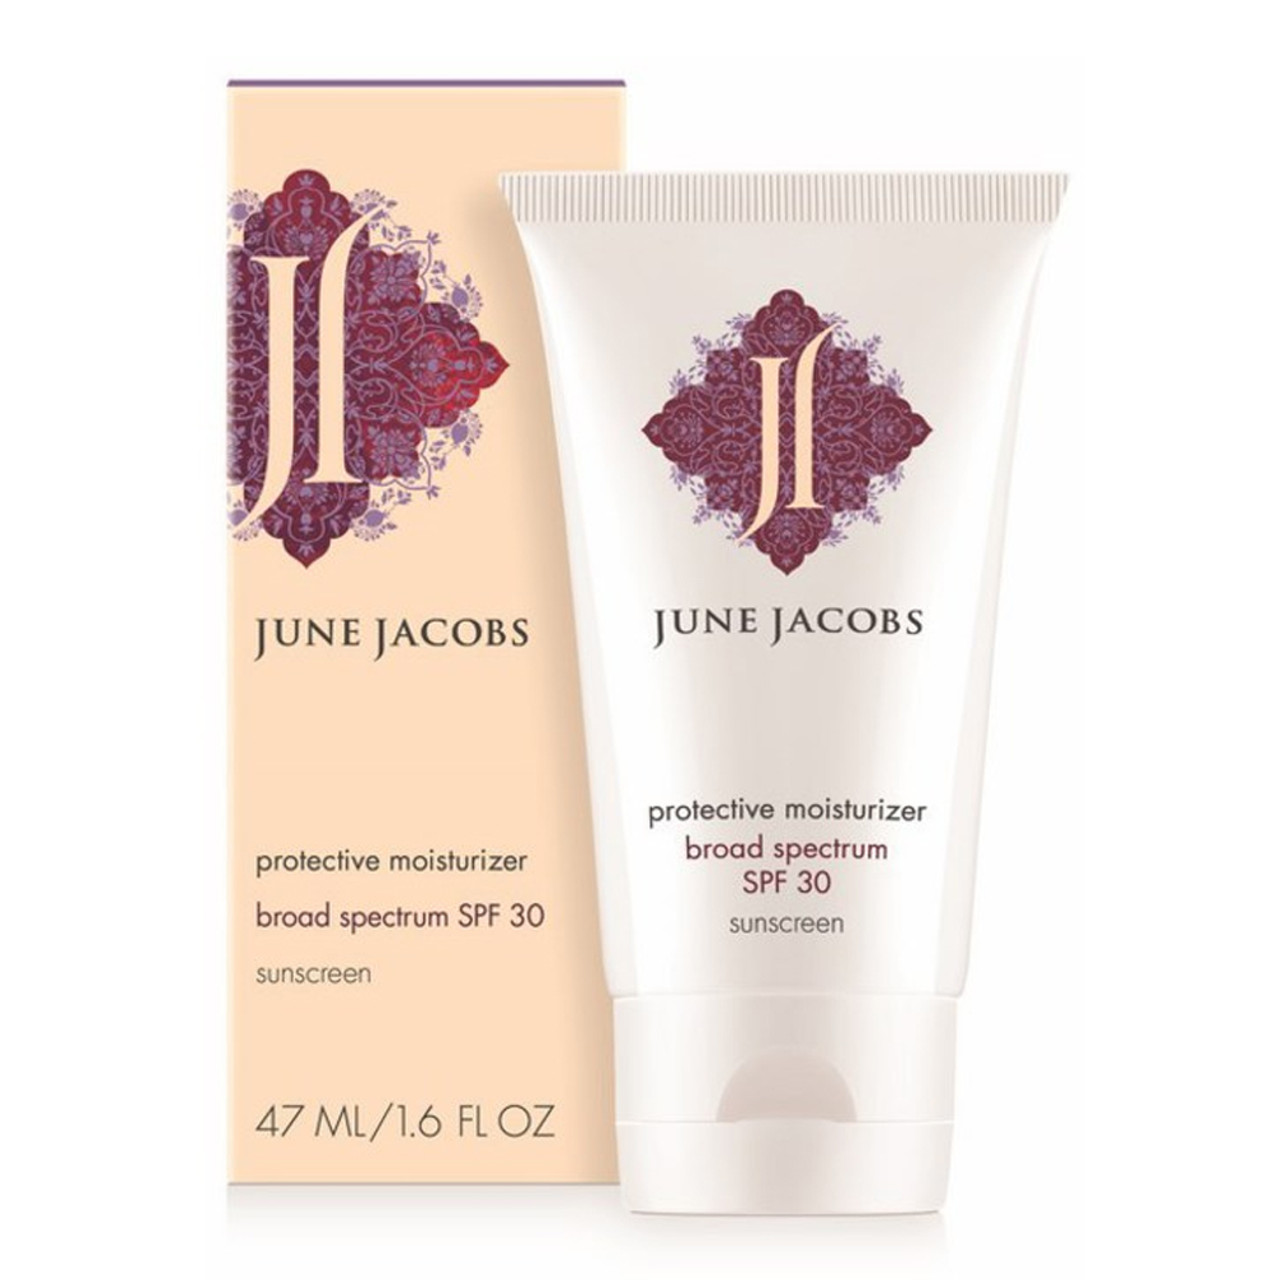 June Jacobs Protective Moisturizer SPF 30